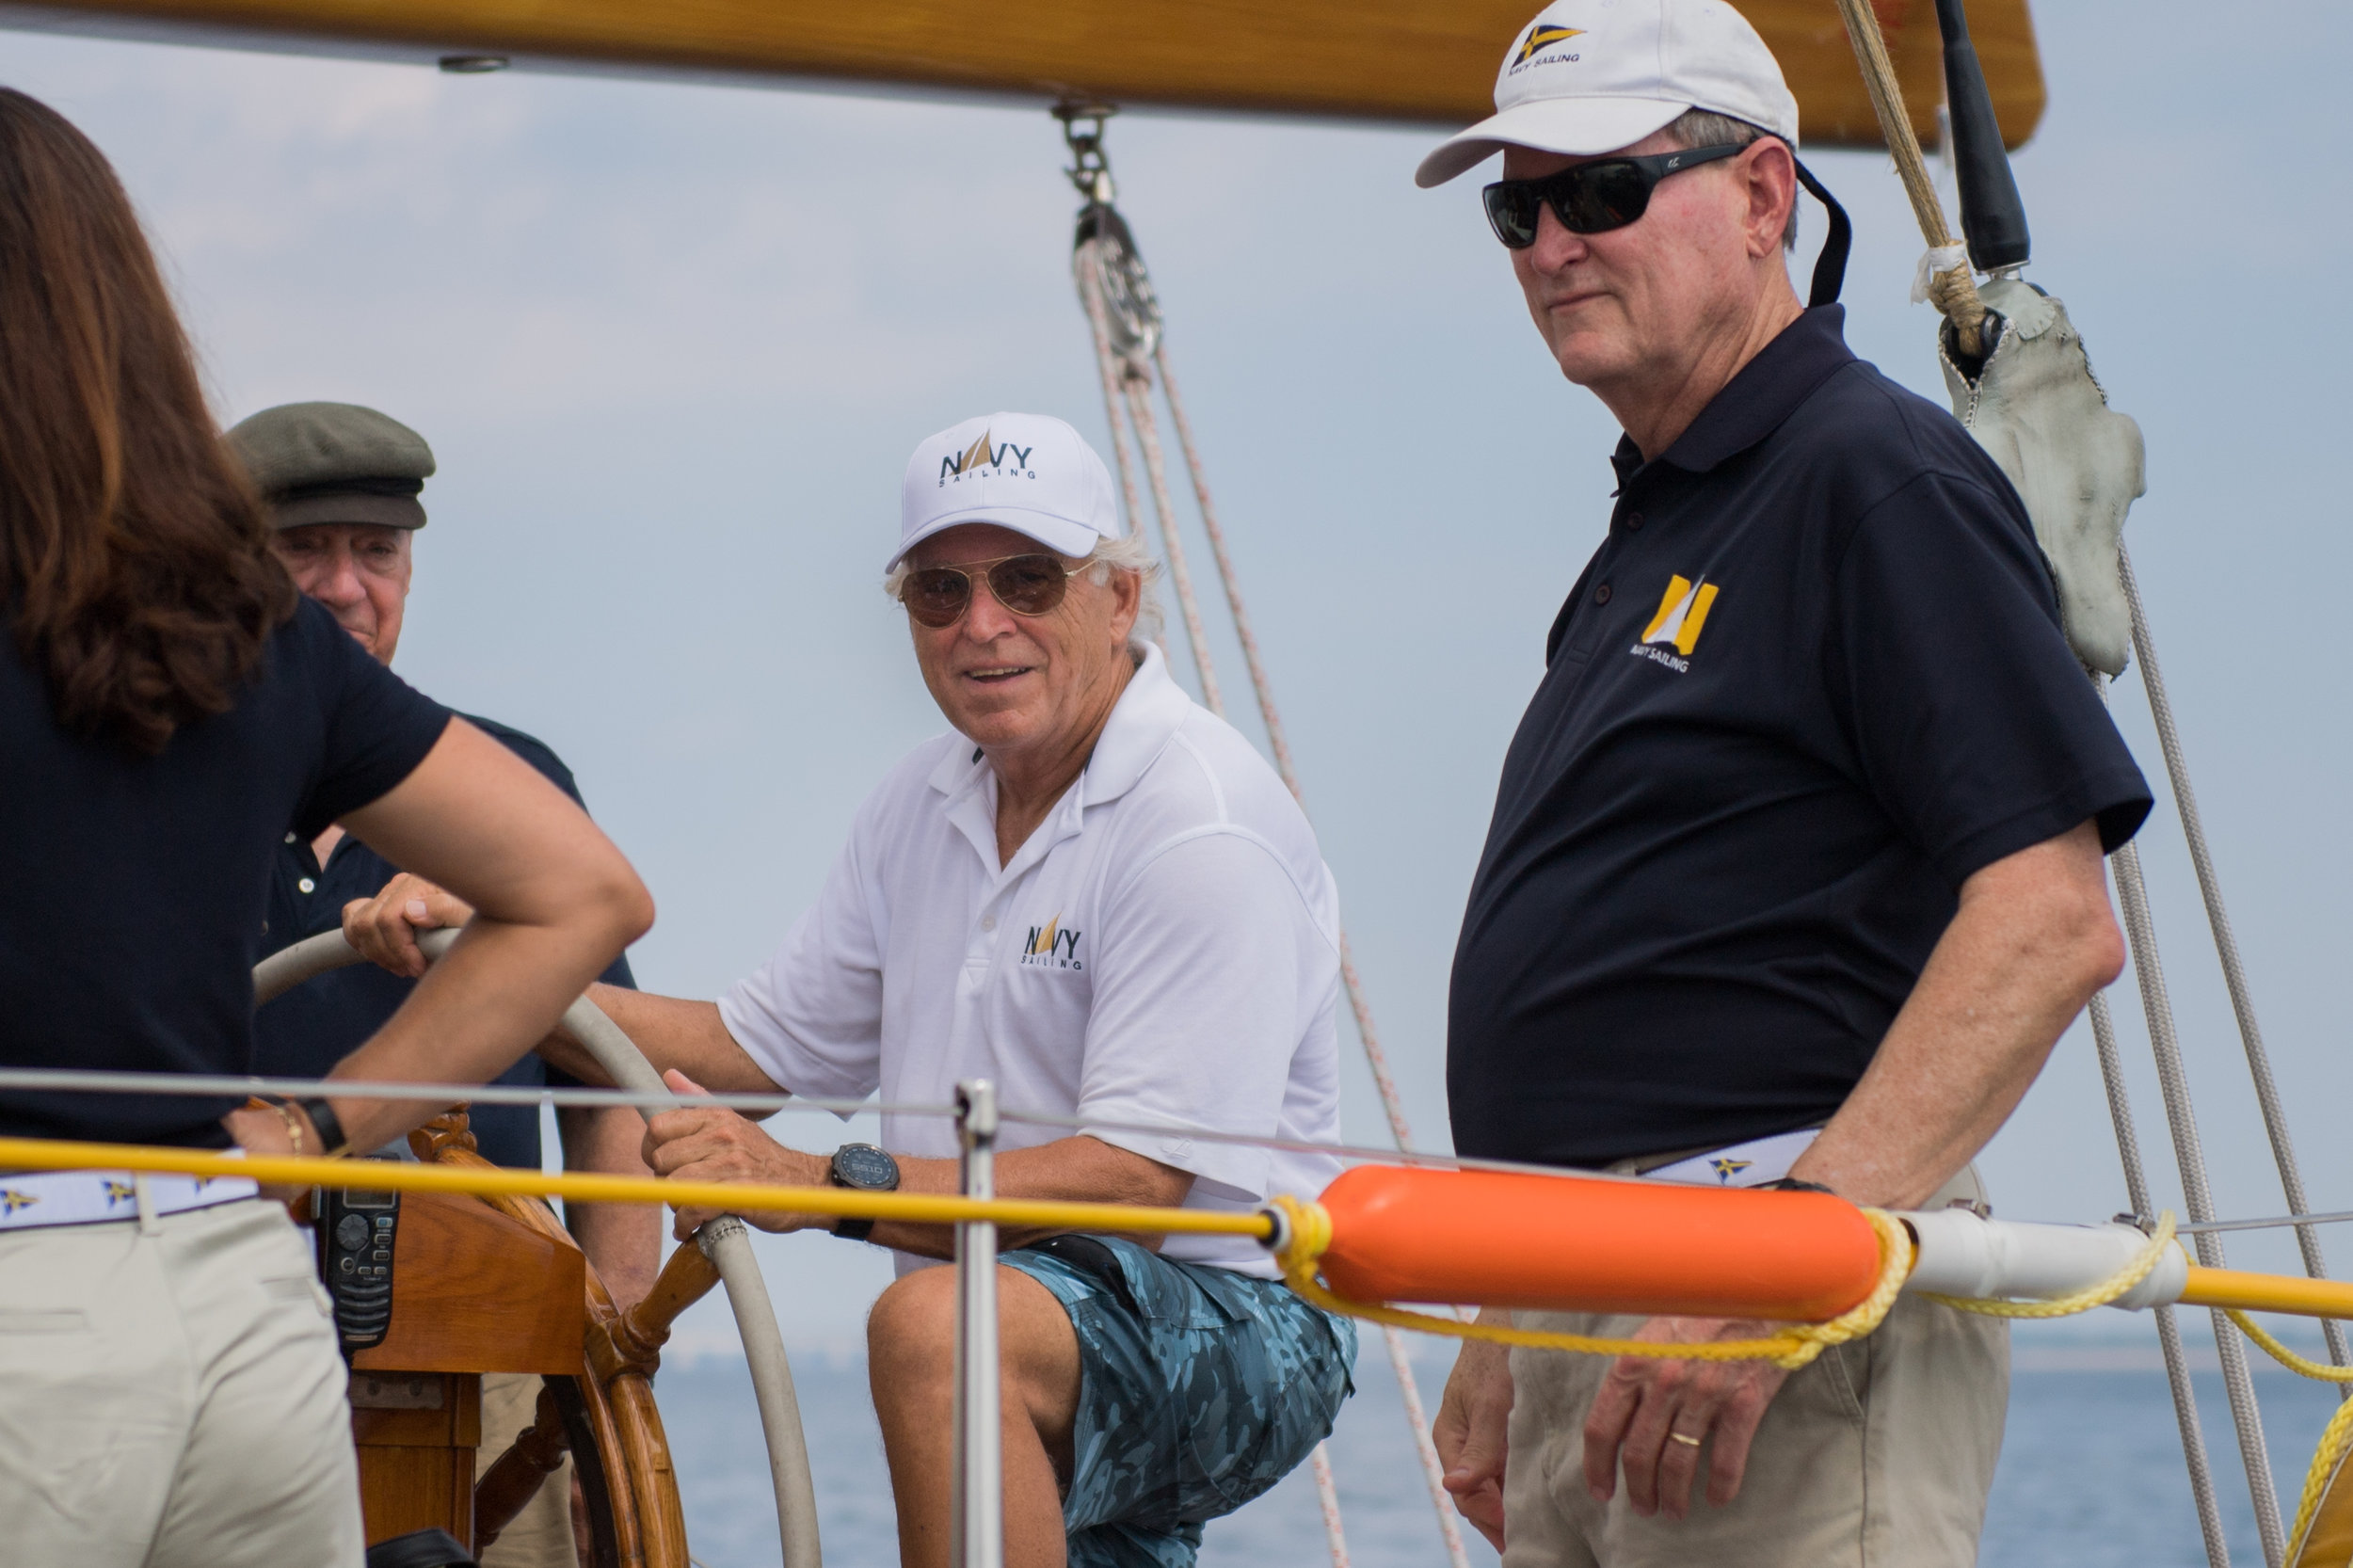 A big fan of Naval Academy Sailing, Jimmy has been wearing our gear on stage this summer.